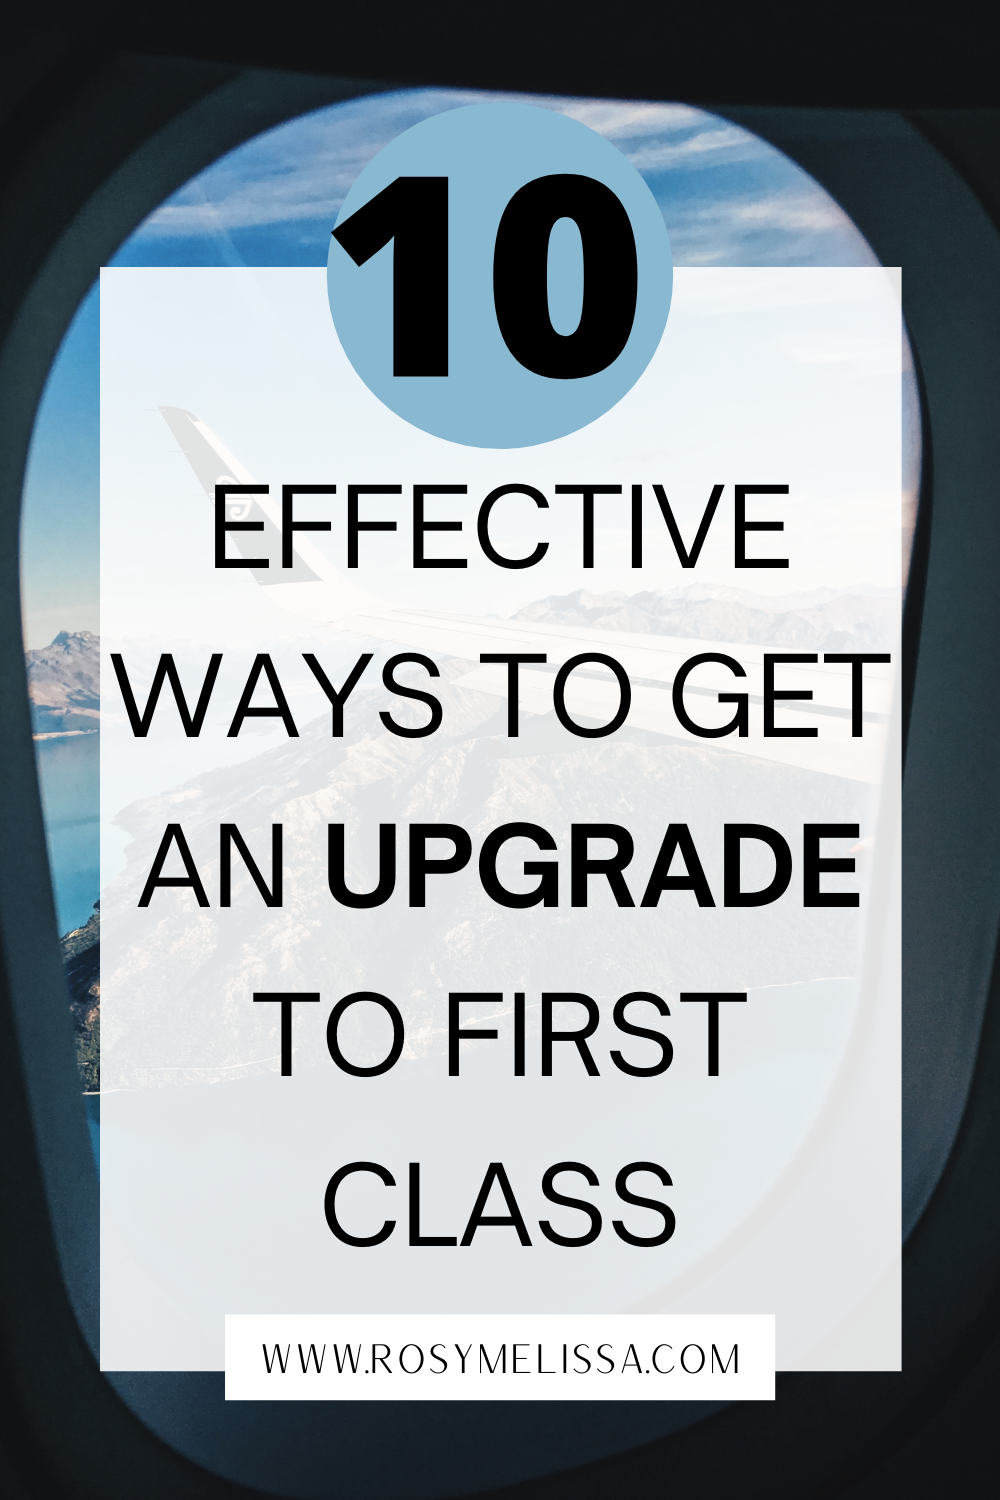 10 proven tips to get upgraded to first class, get an upgrade to first class, how to get into first class, luxury travel